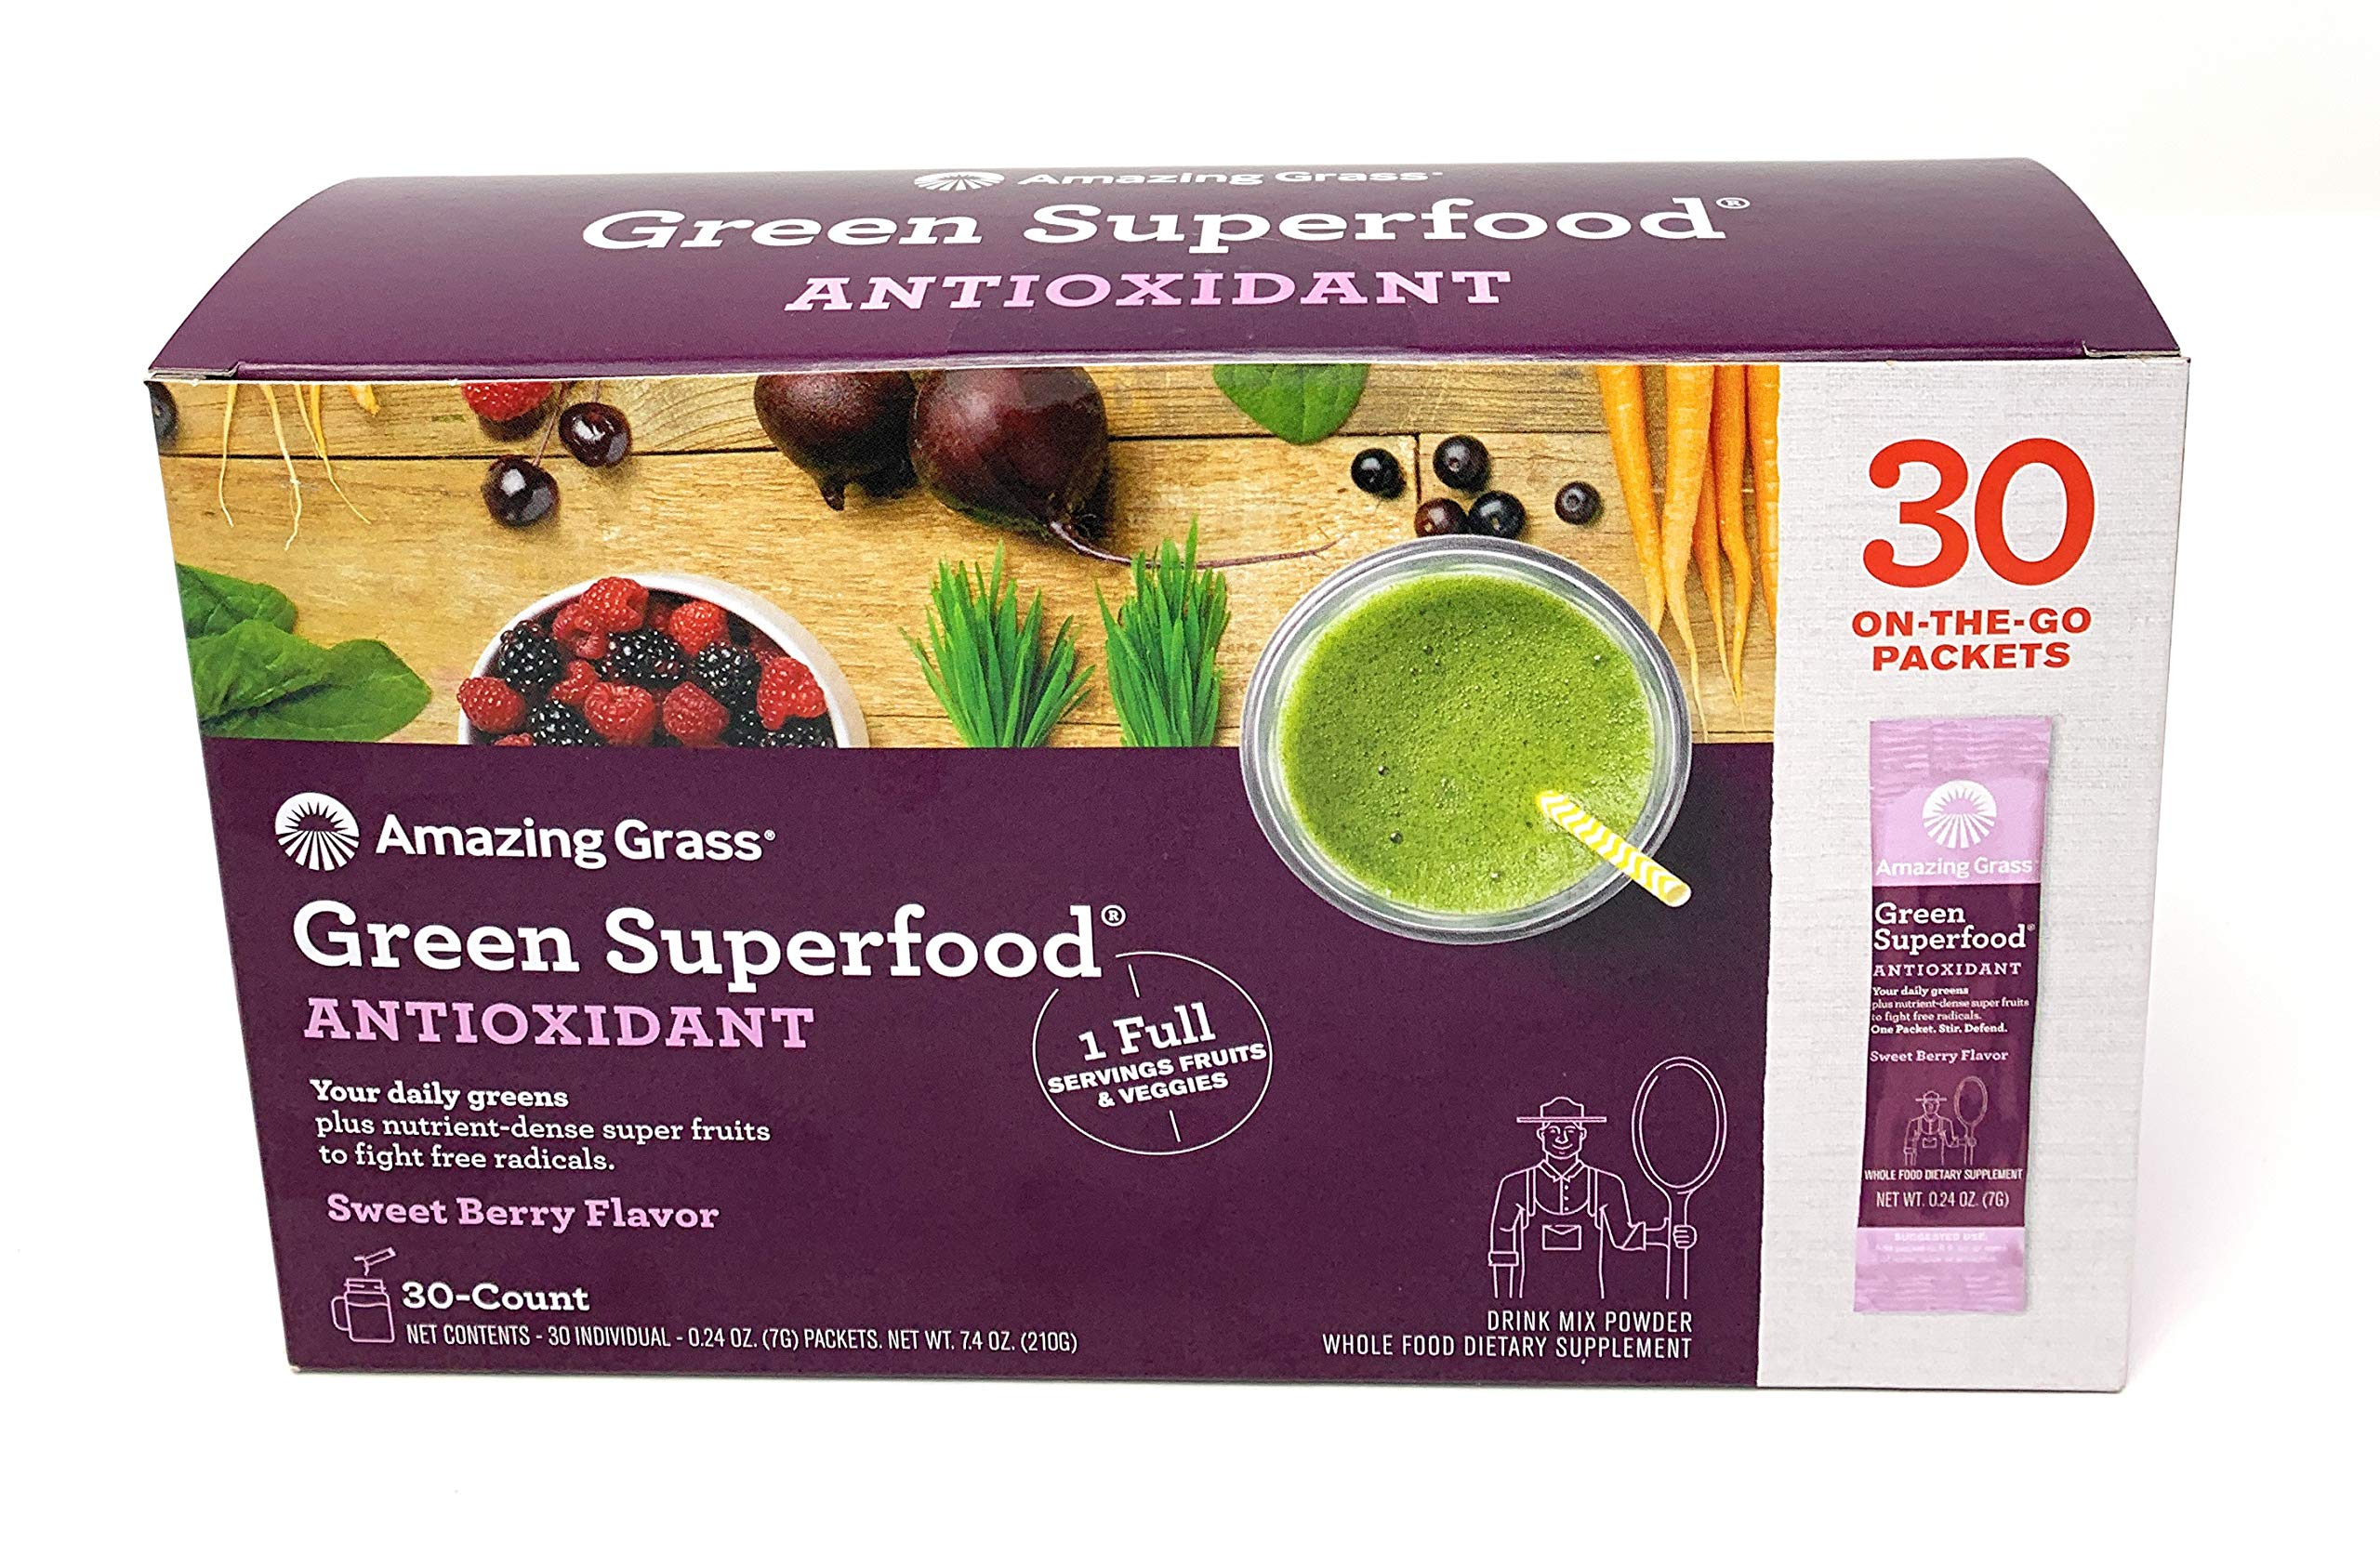 Amazing Grass Green Superfood Antioxidant Sweet Berry Flavor .Natural Energy;Promotes Detox;Helps Alkalize;Aids Digestion;Supports Immunity;Gluten Free;No Sugar Added;Plant Based;Non GMO.30 Packets by Amazing Grass